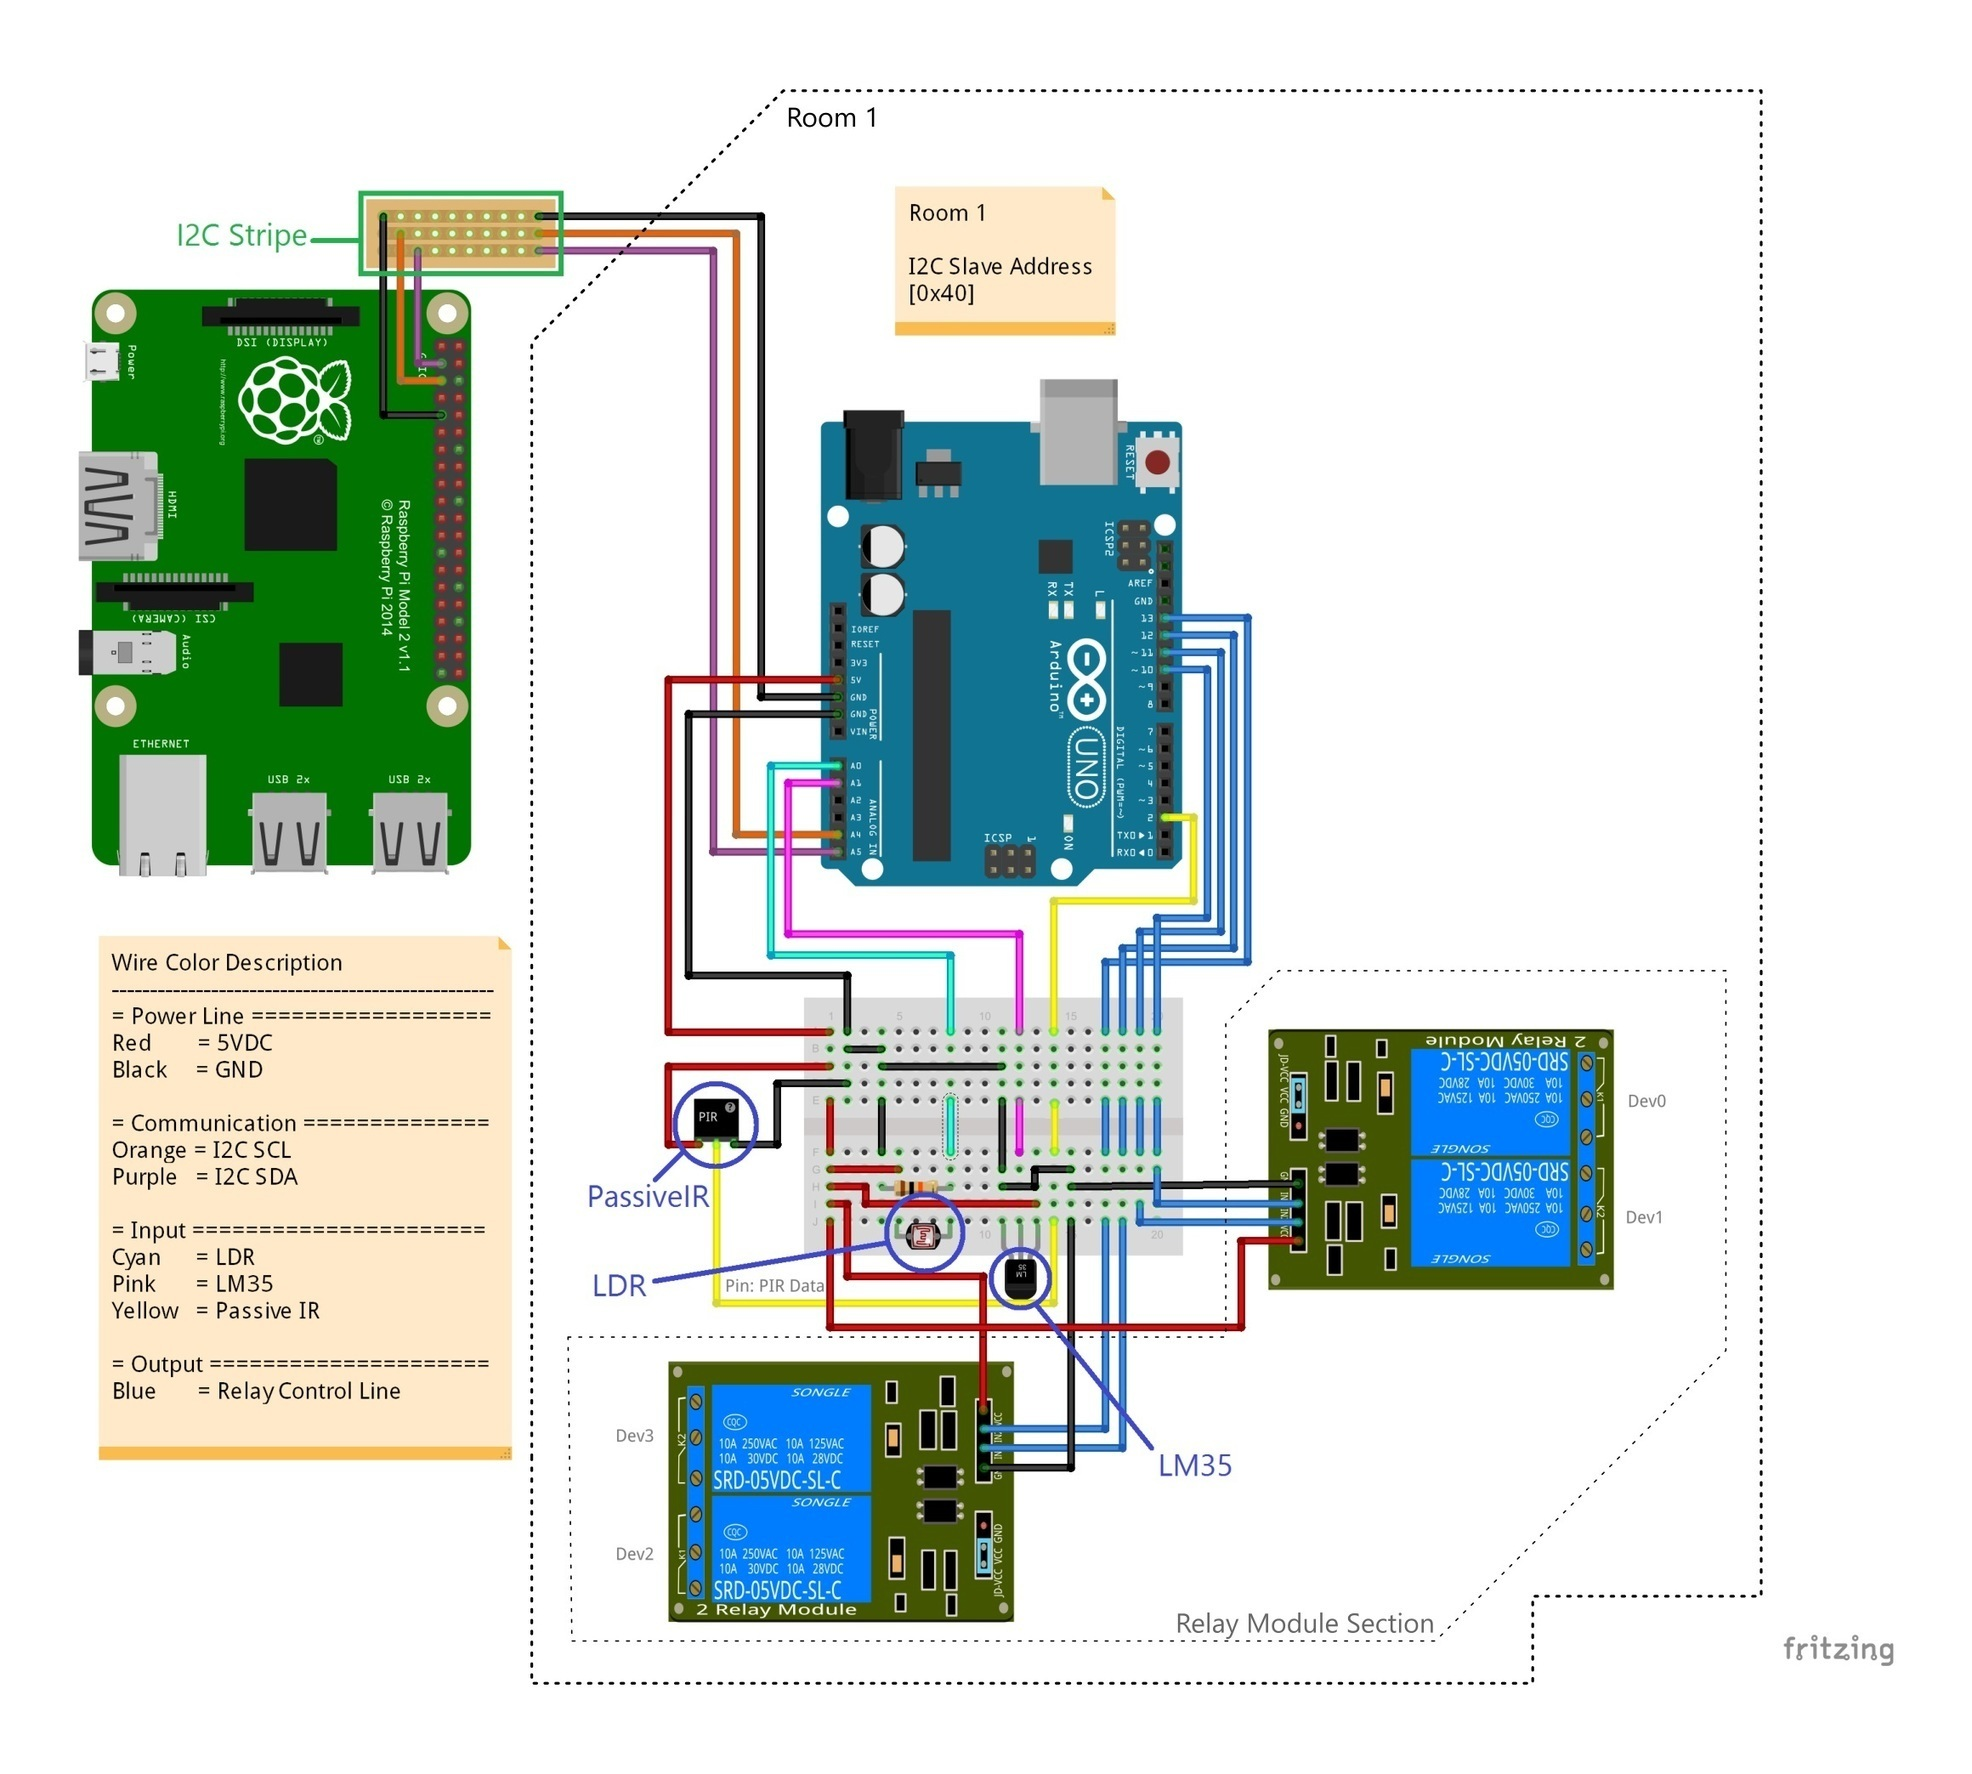 5kTy23URNO_liLz3ZjmB14XXXL4j3HpexhjNOf_P3YmryPKwJ94QGRtDb3Sbc6KY home automation using raspberry pi 2 and window yun ba wiring diagram at crackthecode.co